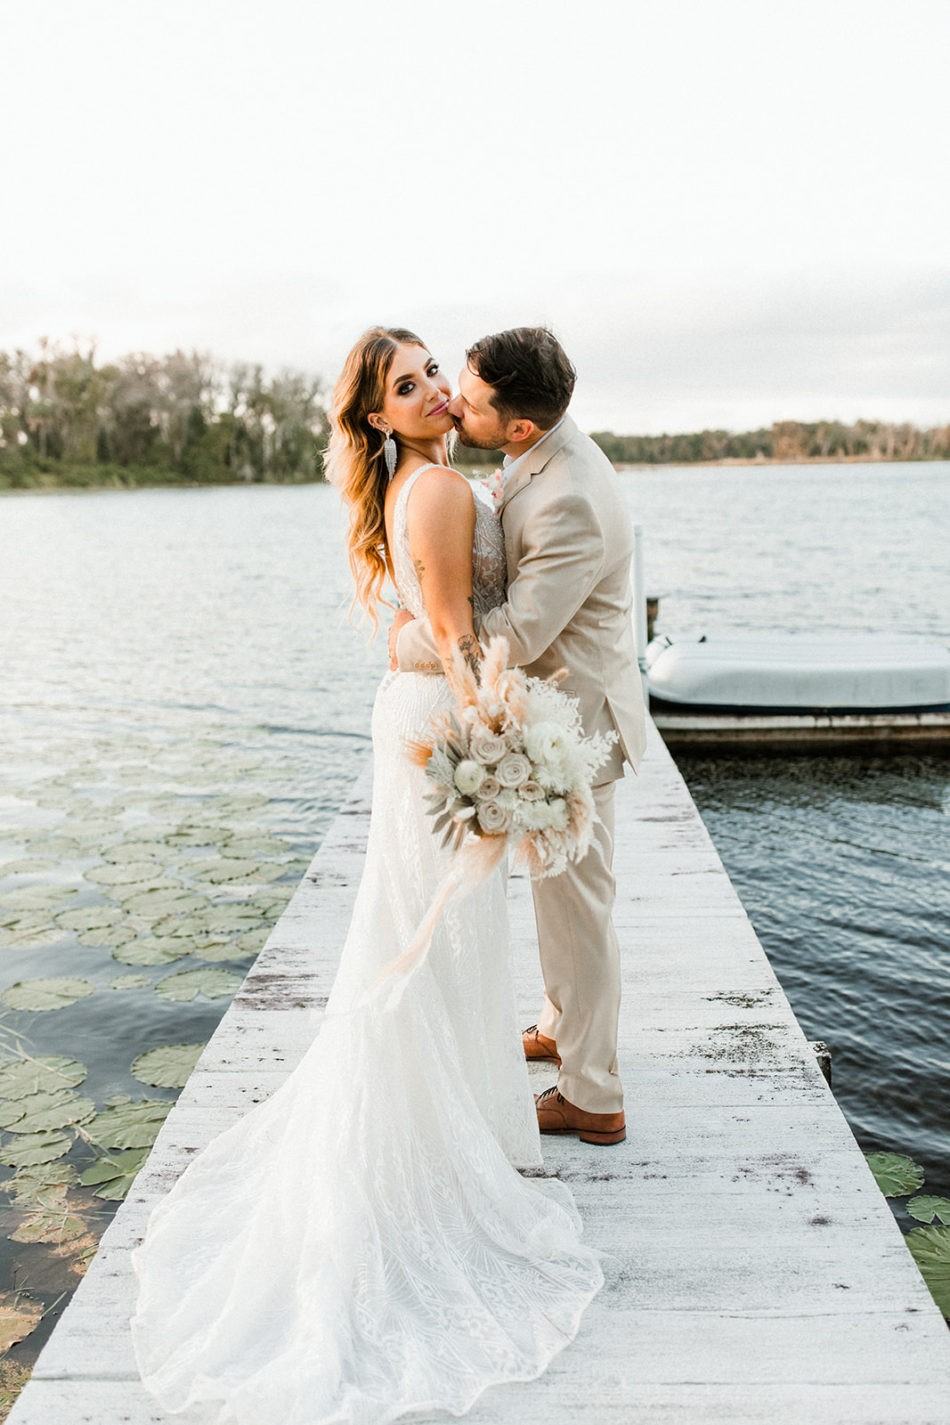 Groom on Dock Kissing Real Bride Wearing Art Deco Wedding Gown called Elaine by Maggie Sottero